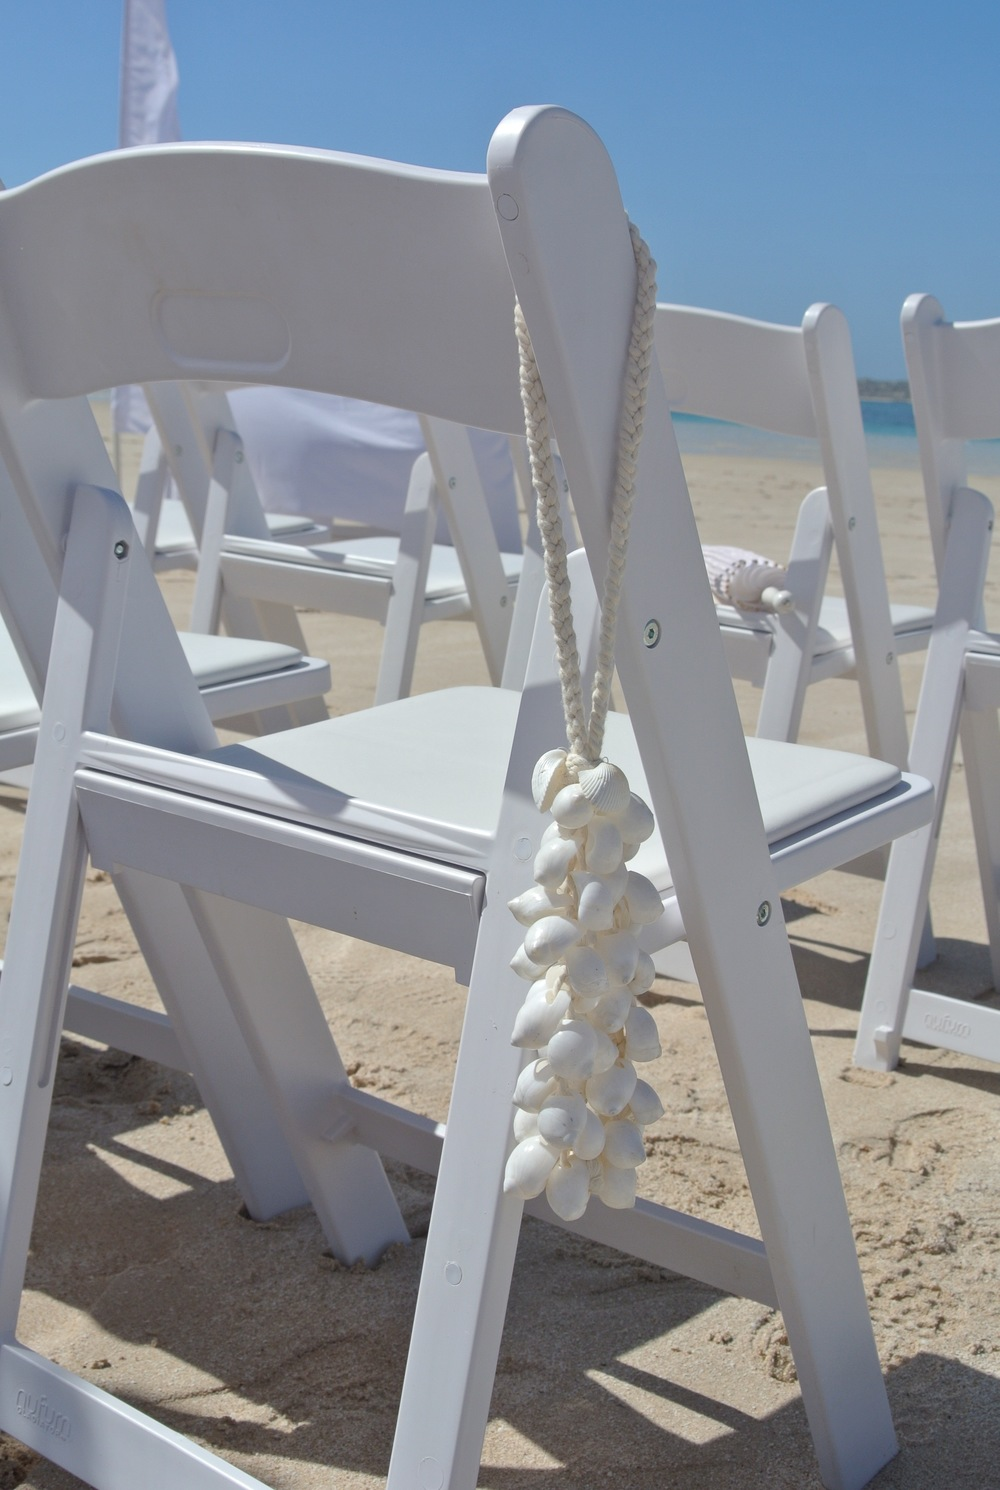 Gladiator Chairs & Shell Chair Hanging